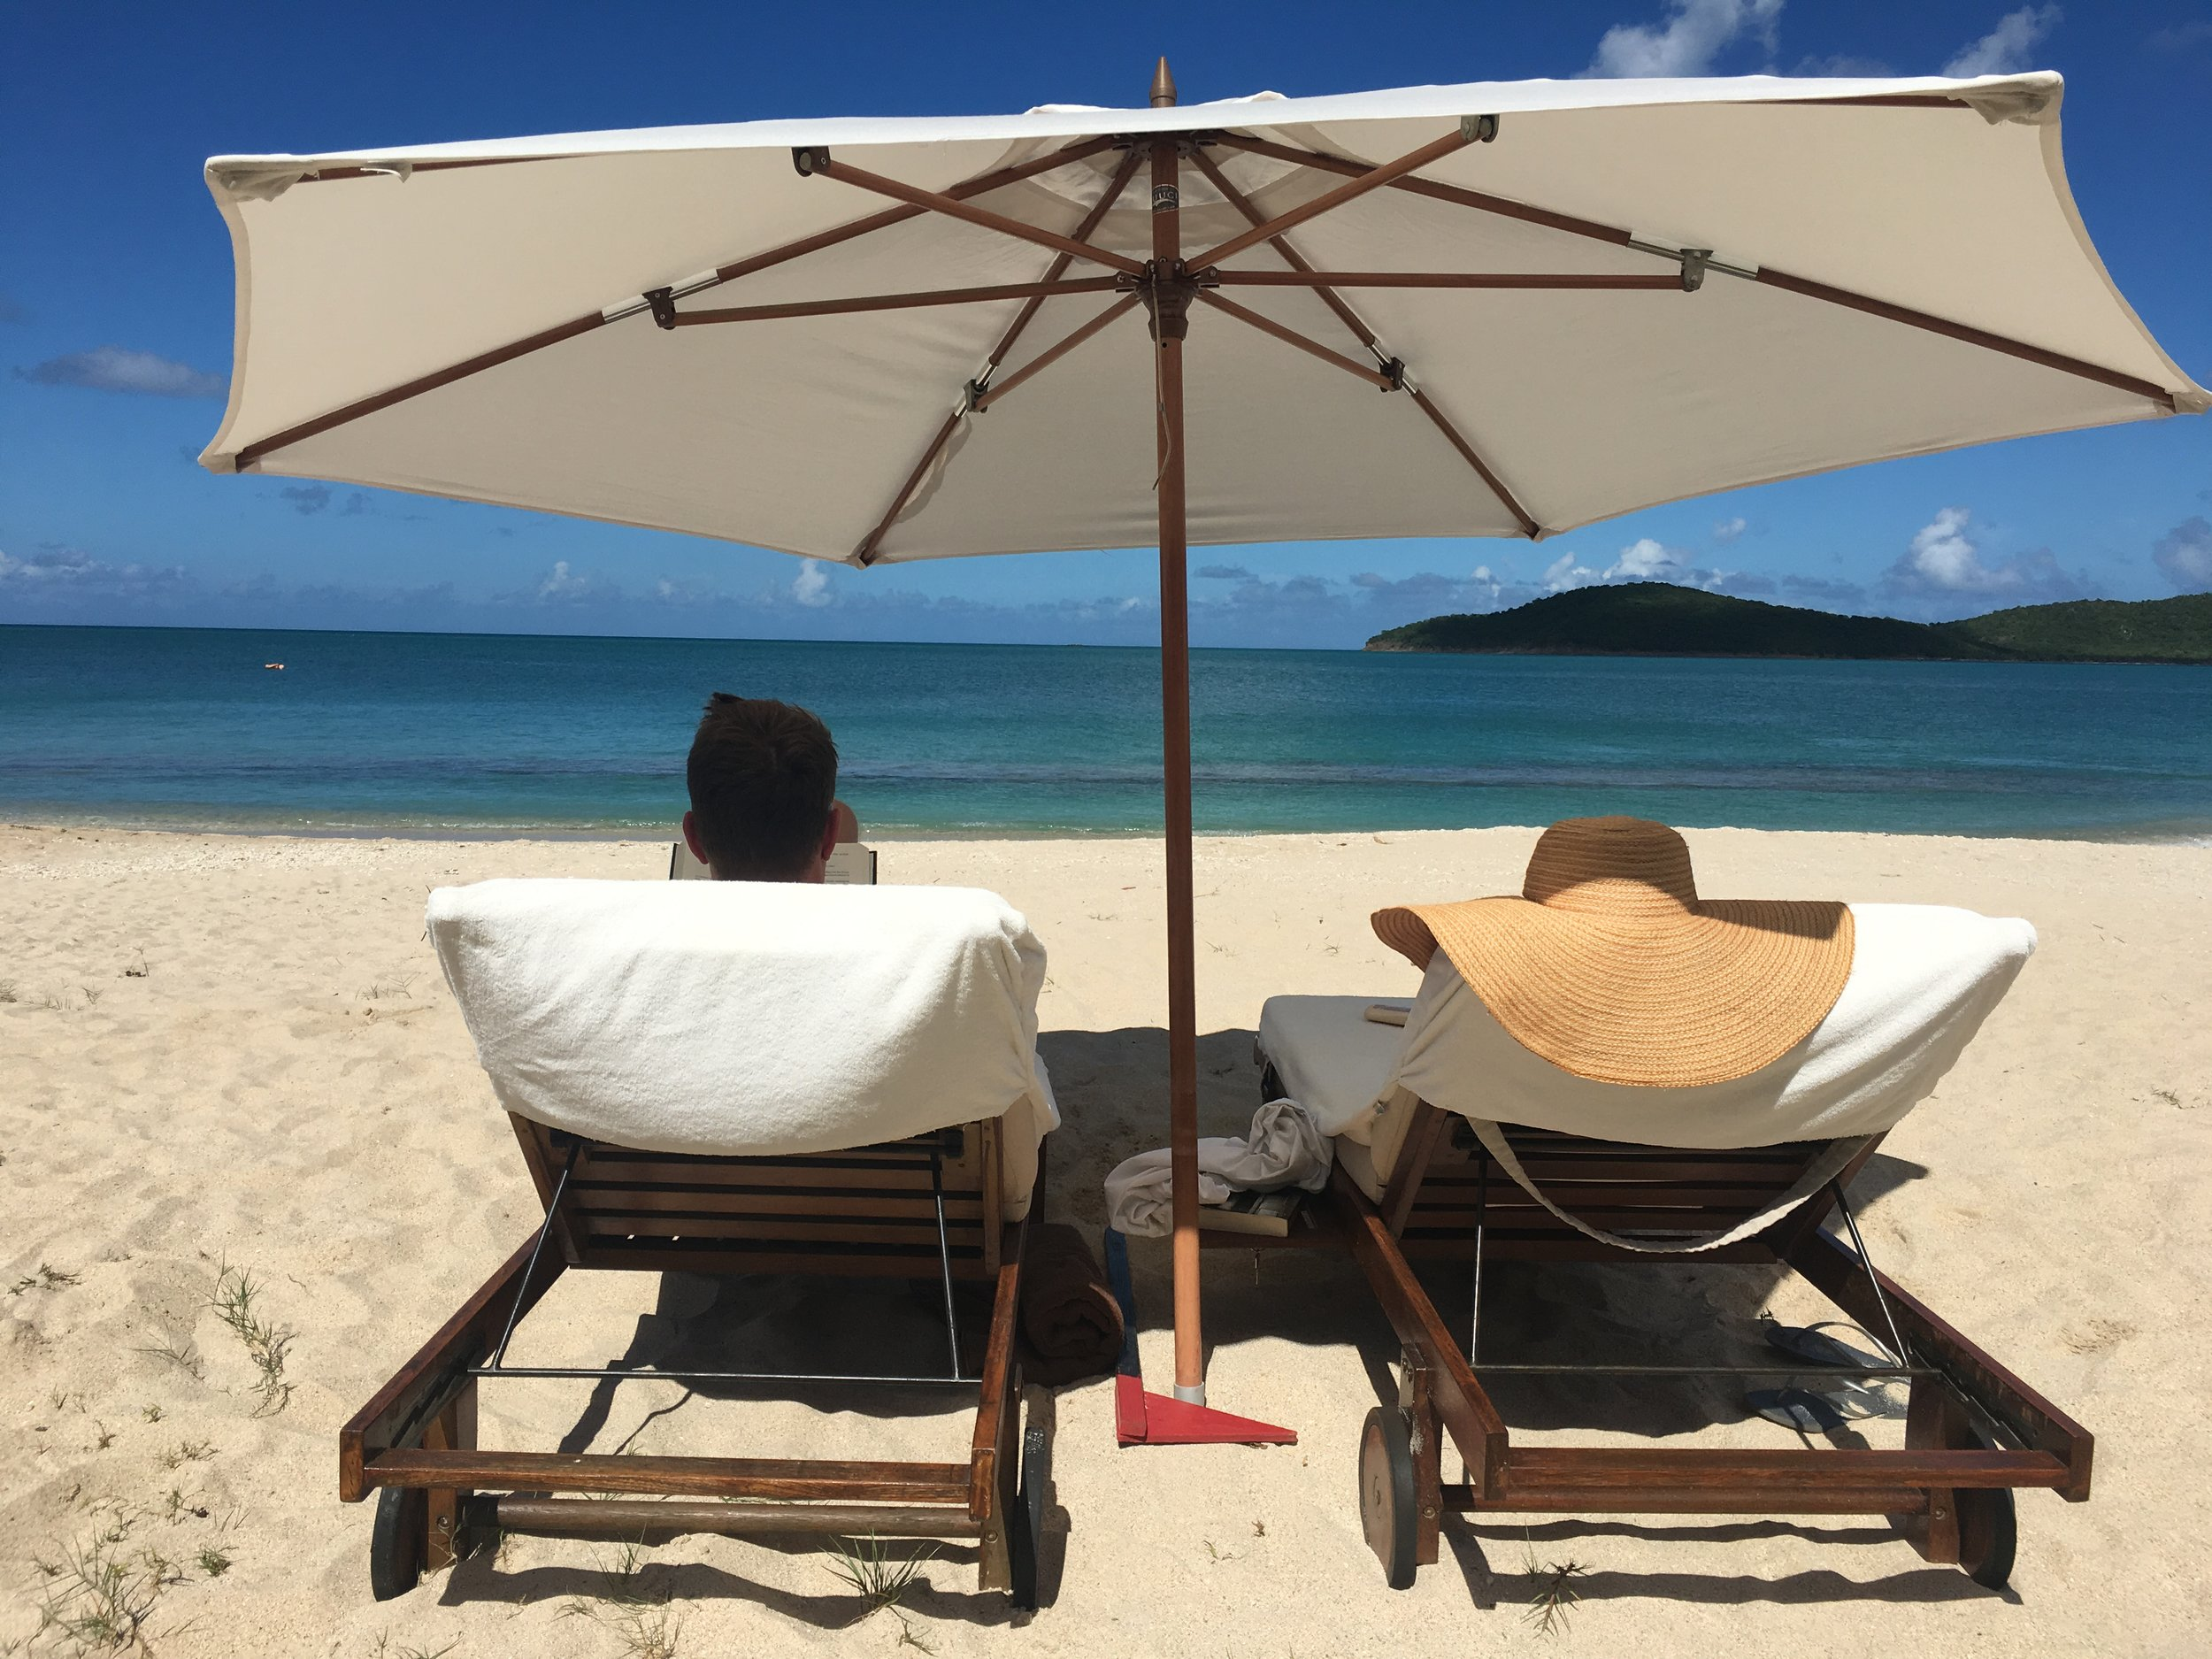 Antigua - Experience innovative color-therapy spa treatments in Antigua...or just sit on the beach.